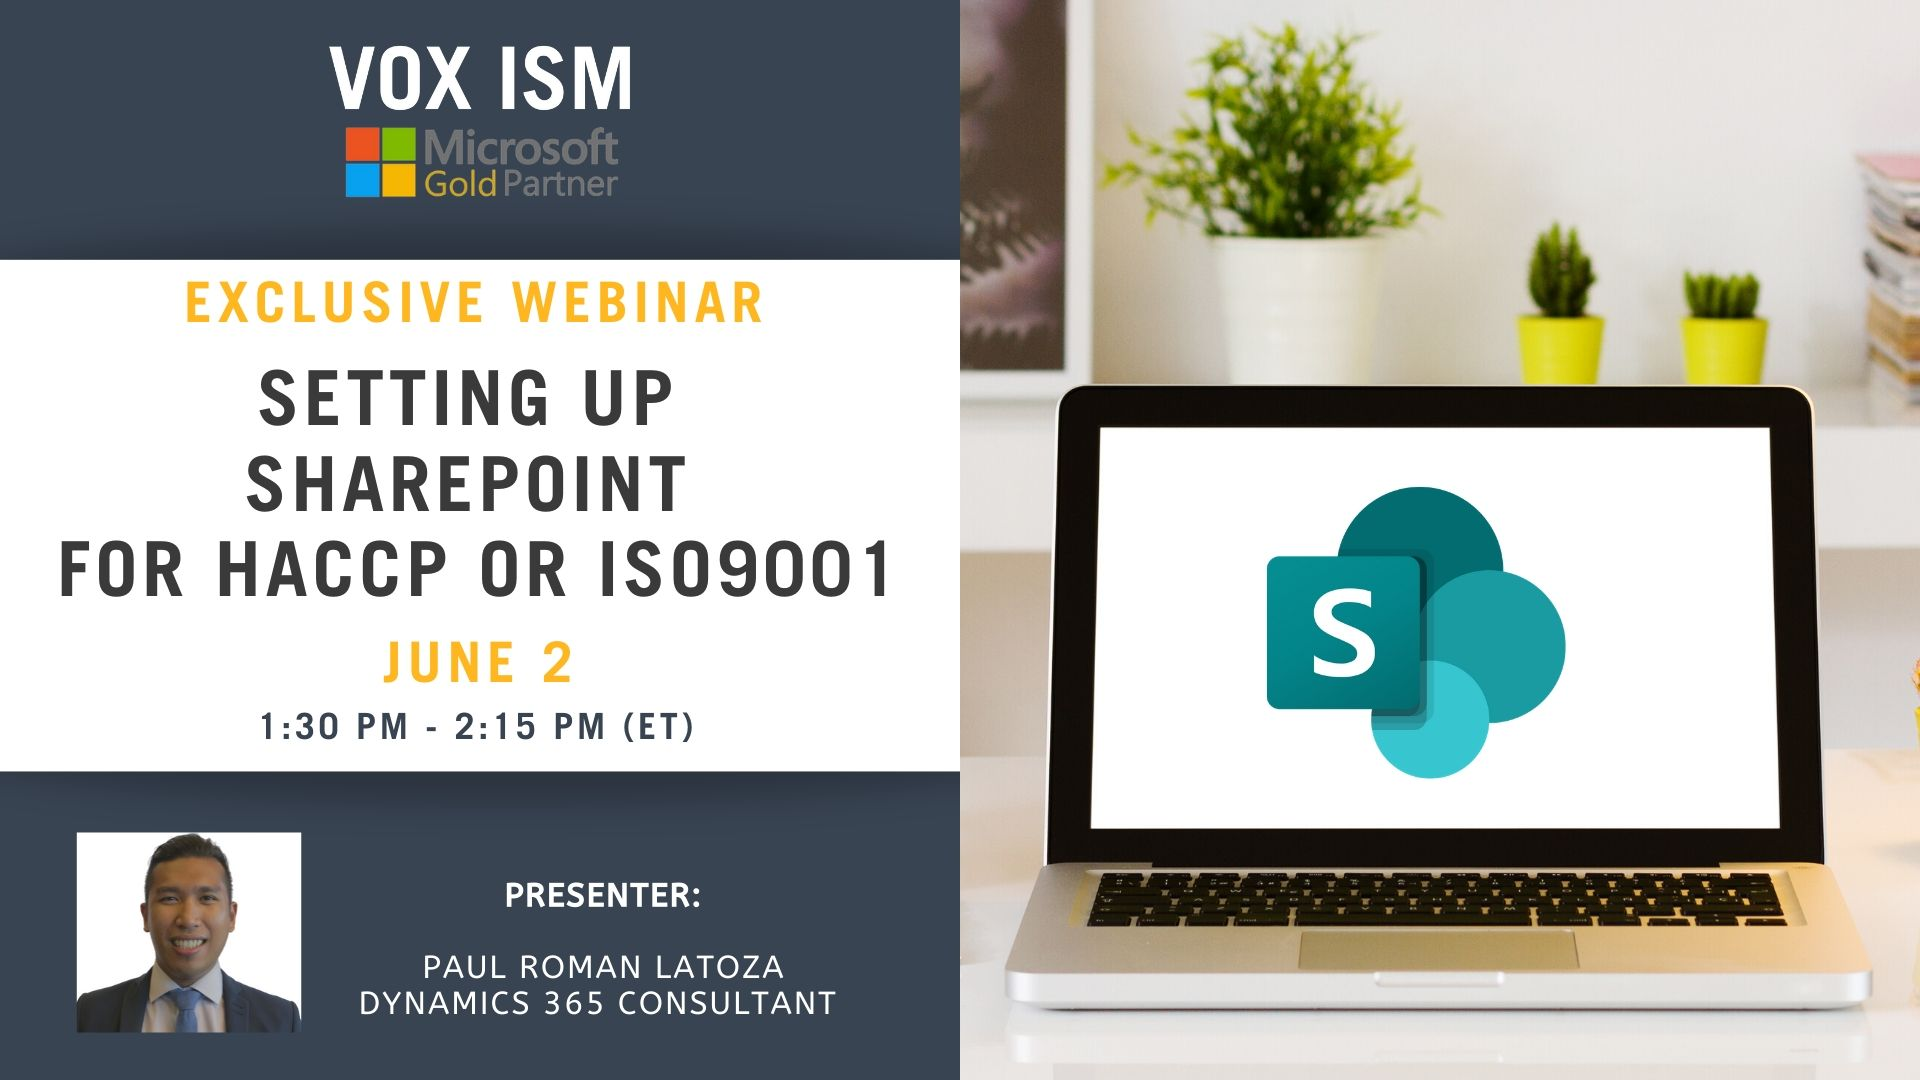 Setting up SharePoint for HACCP or ISO9001 - June 2 - Webinar VOX ISM